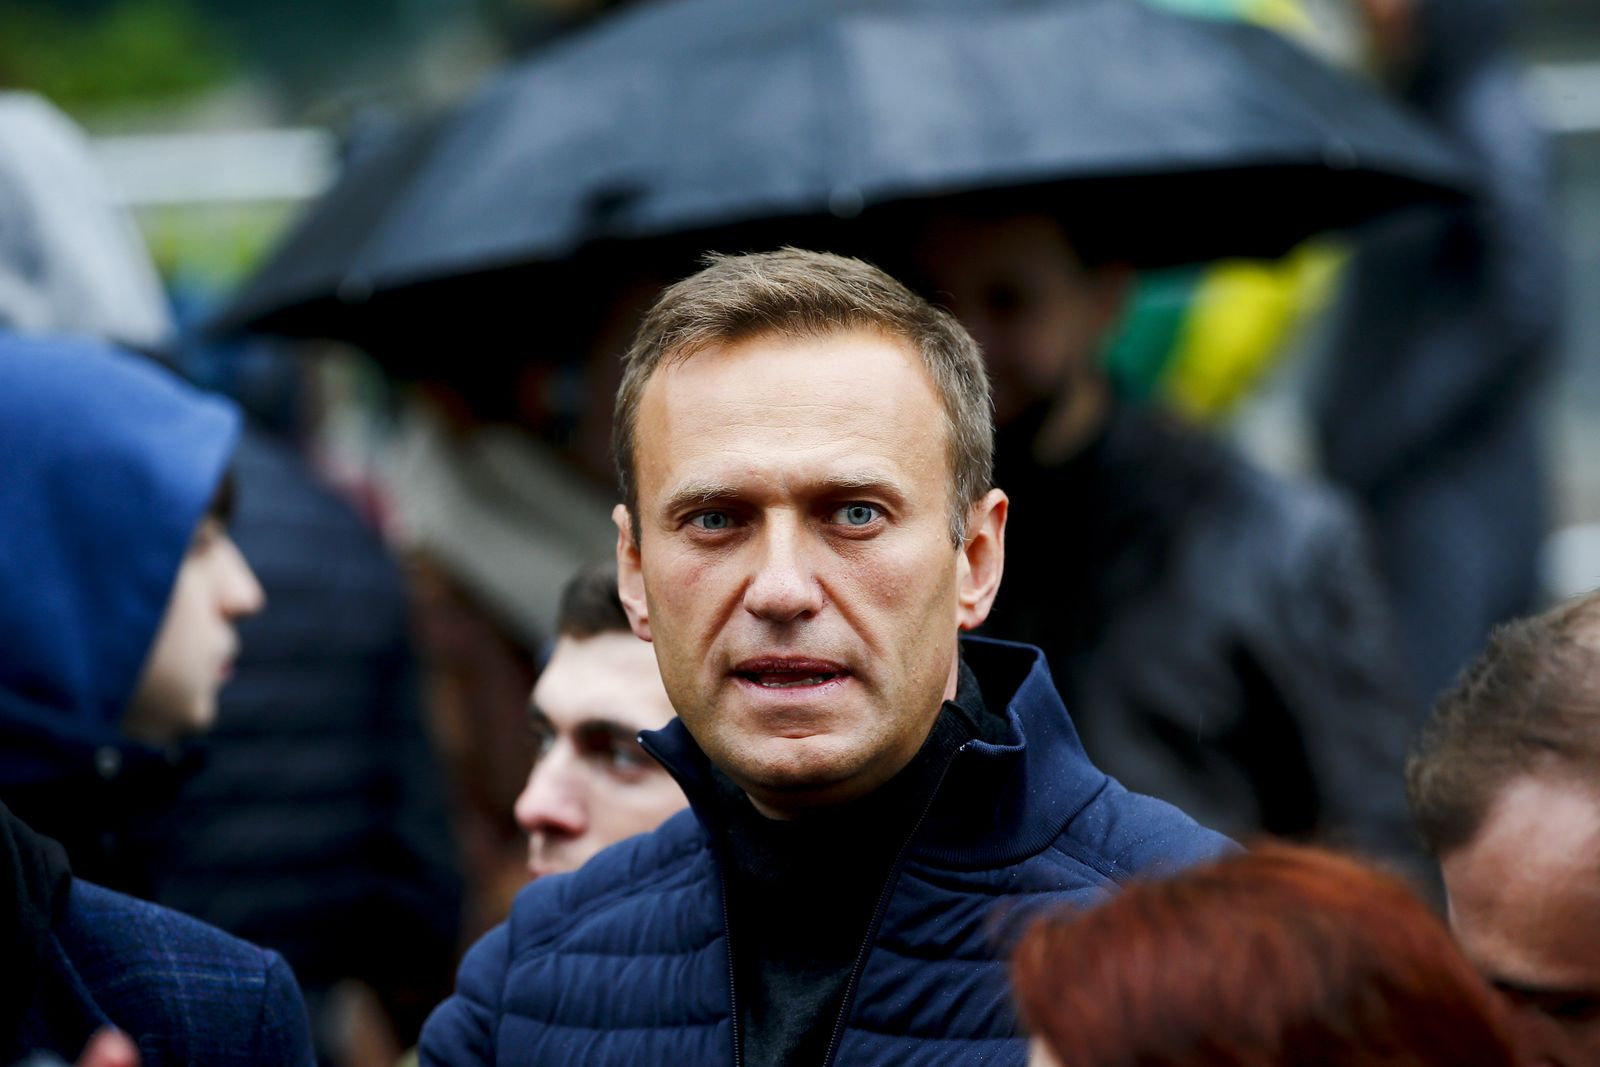 Alexei Navalny unconscious in hospital with suspected poisoning